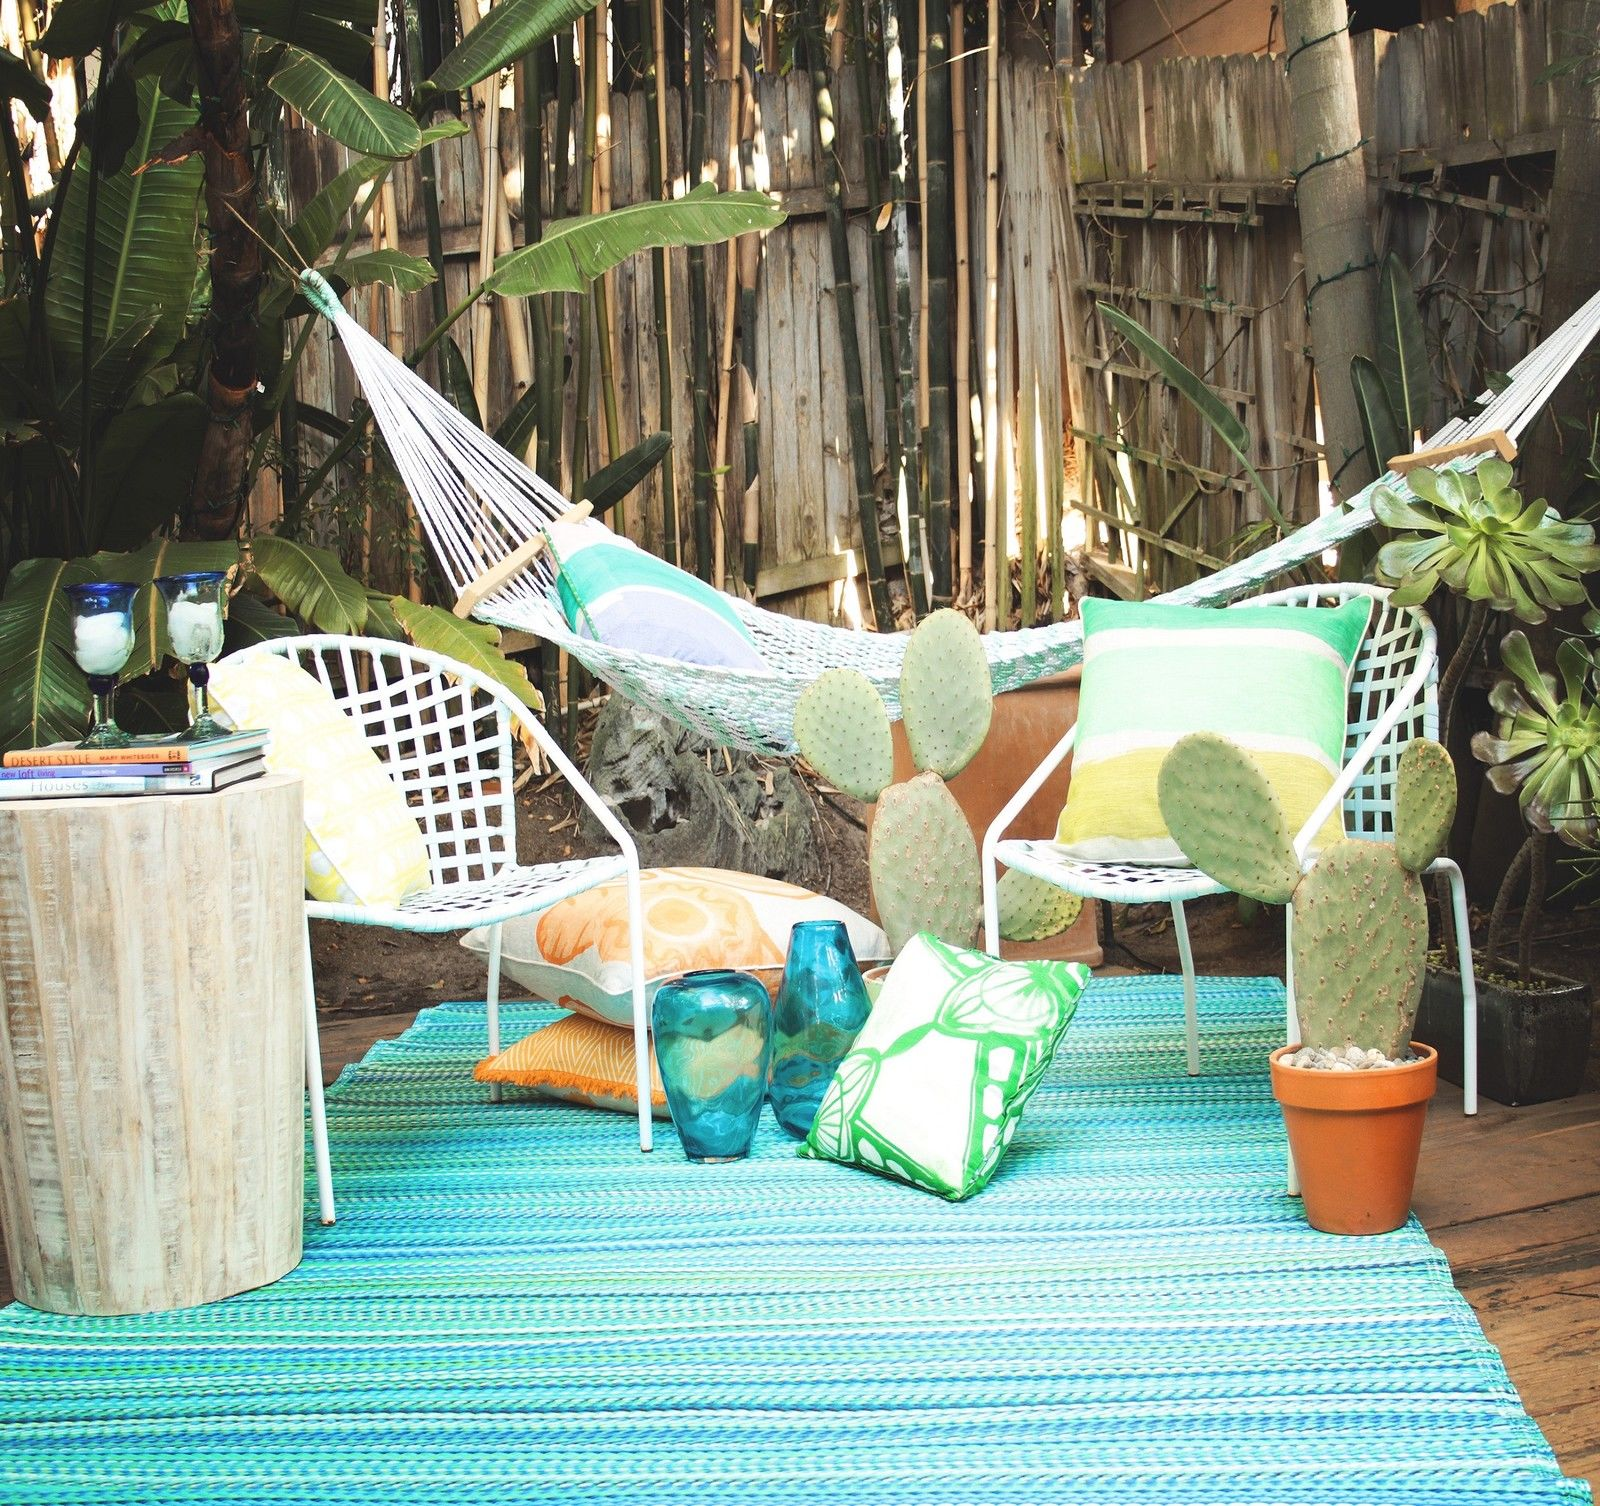 what are pool chairs made out of alps mountaineering adventure chair recycled plastic outdoor rugs: environmentally friendly choice | homesfeed